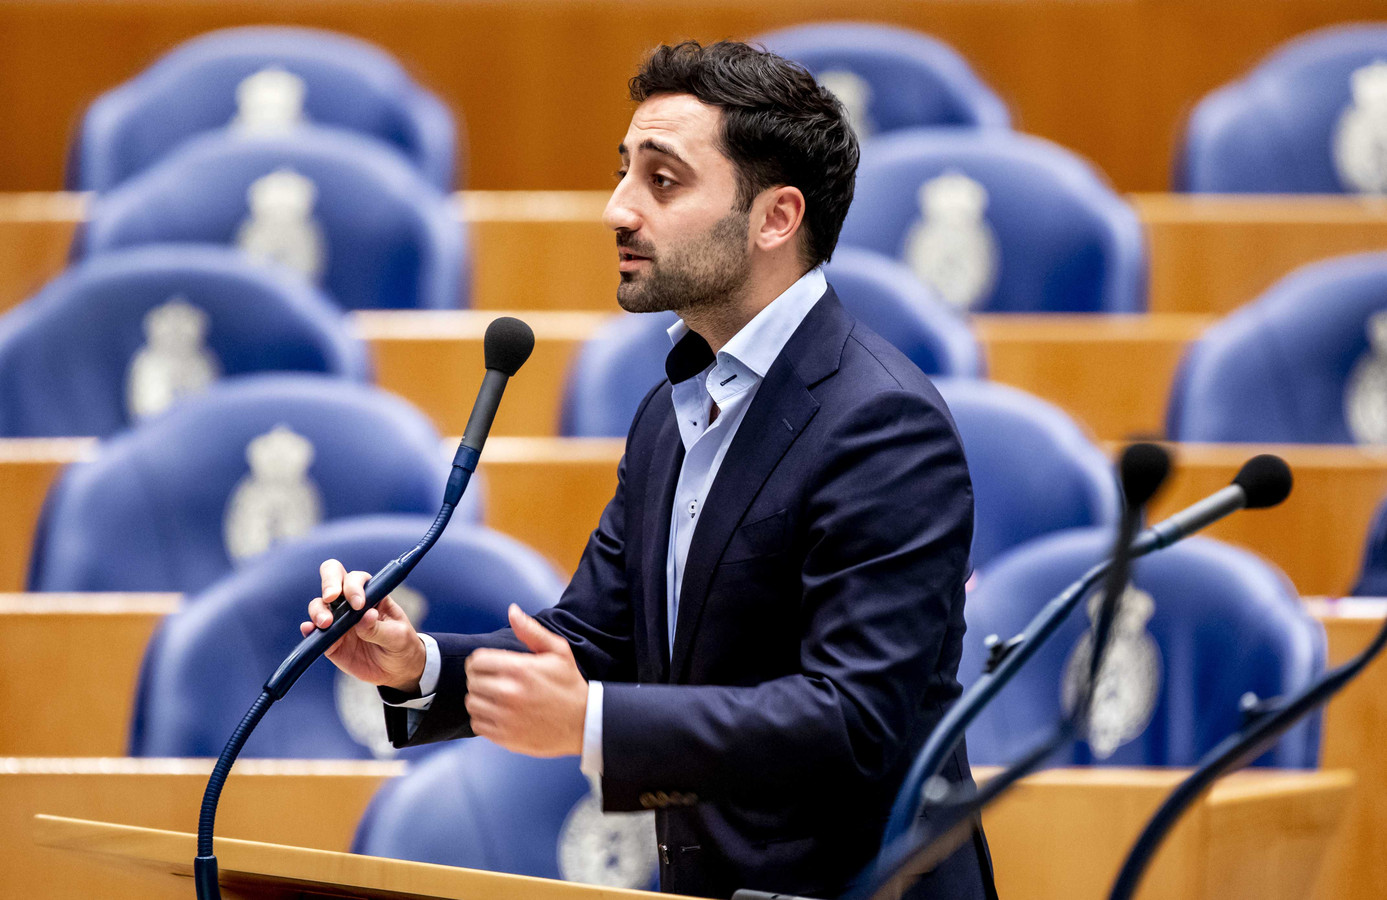 Mahir Alkaya (SP) in de Tweede Kamer